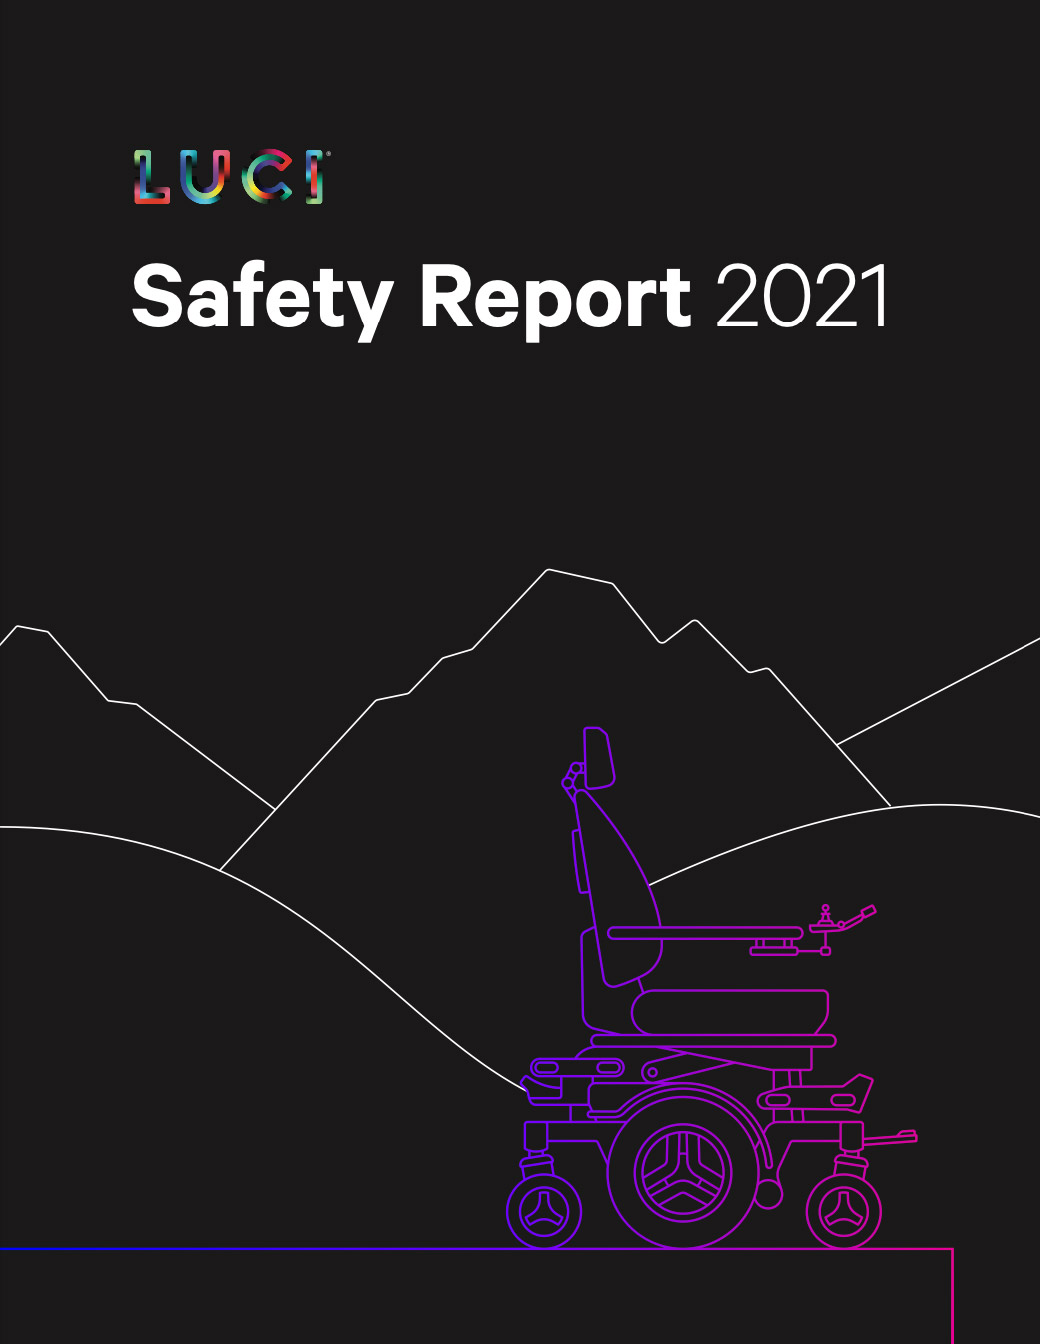 Safety Report 2021